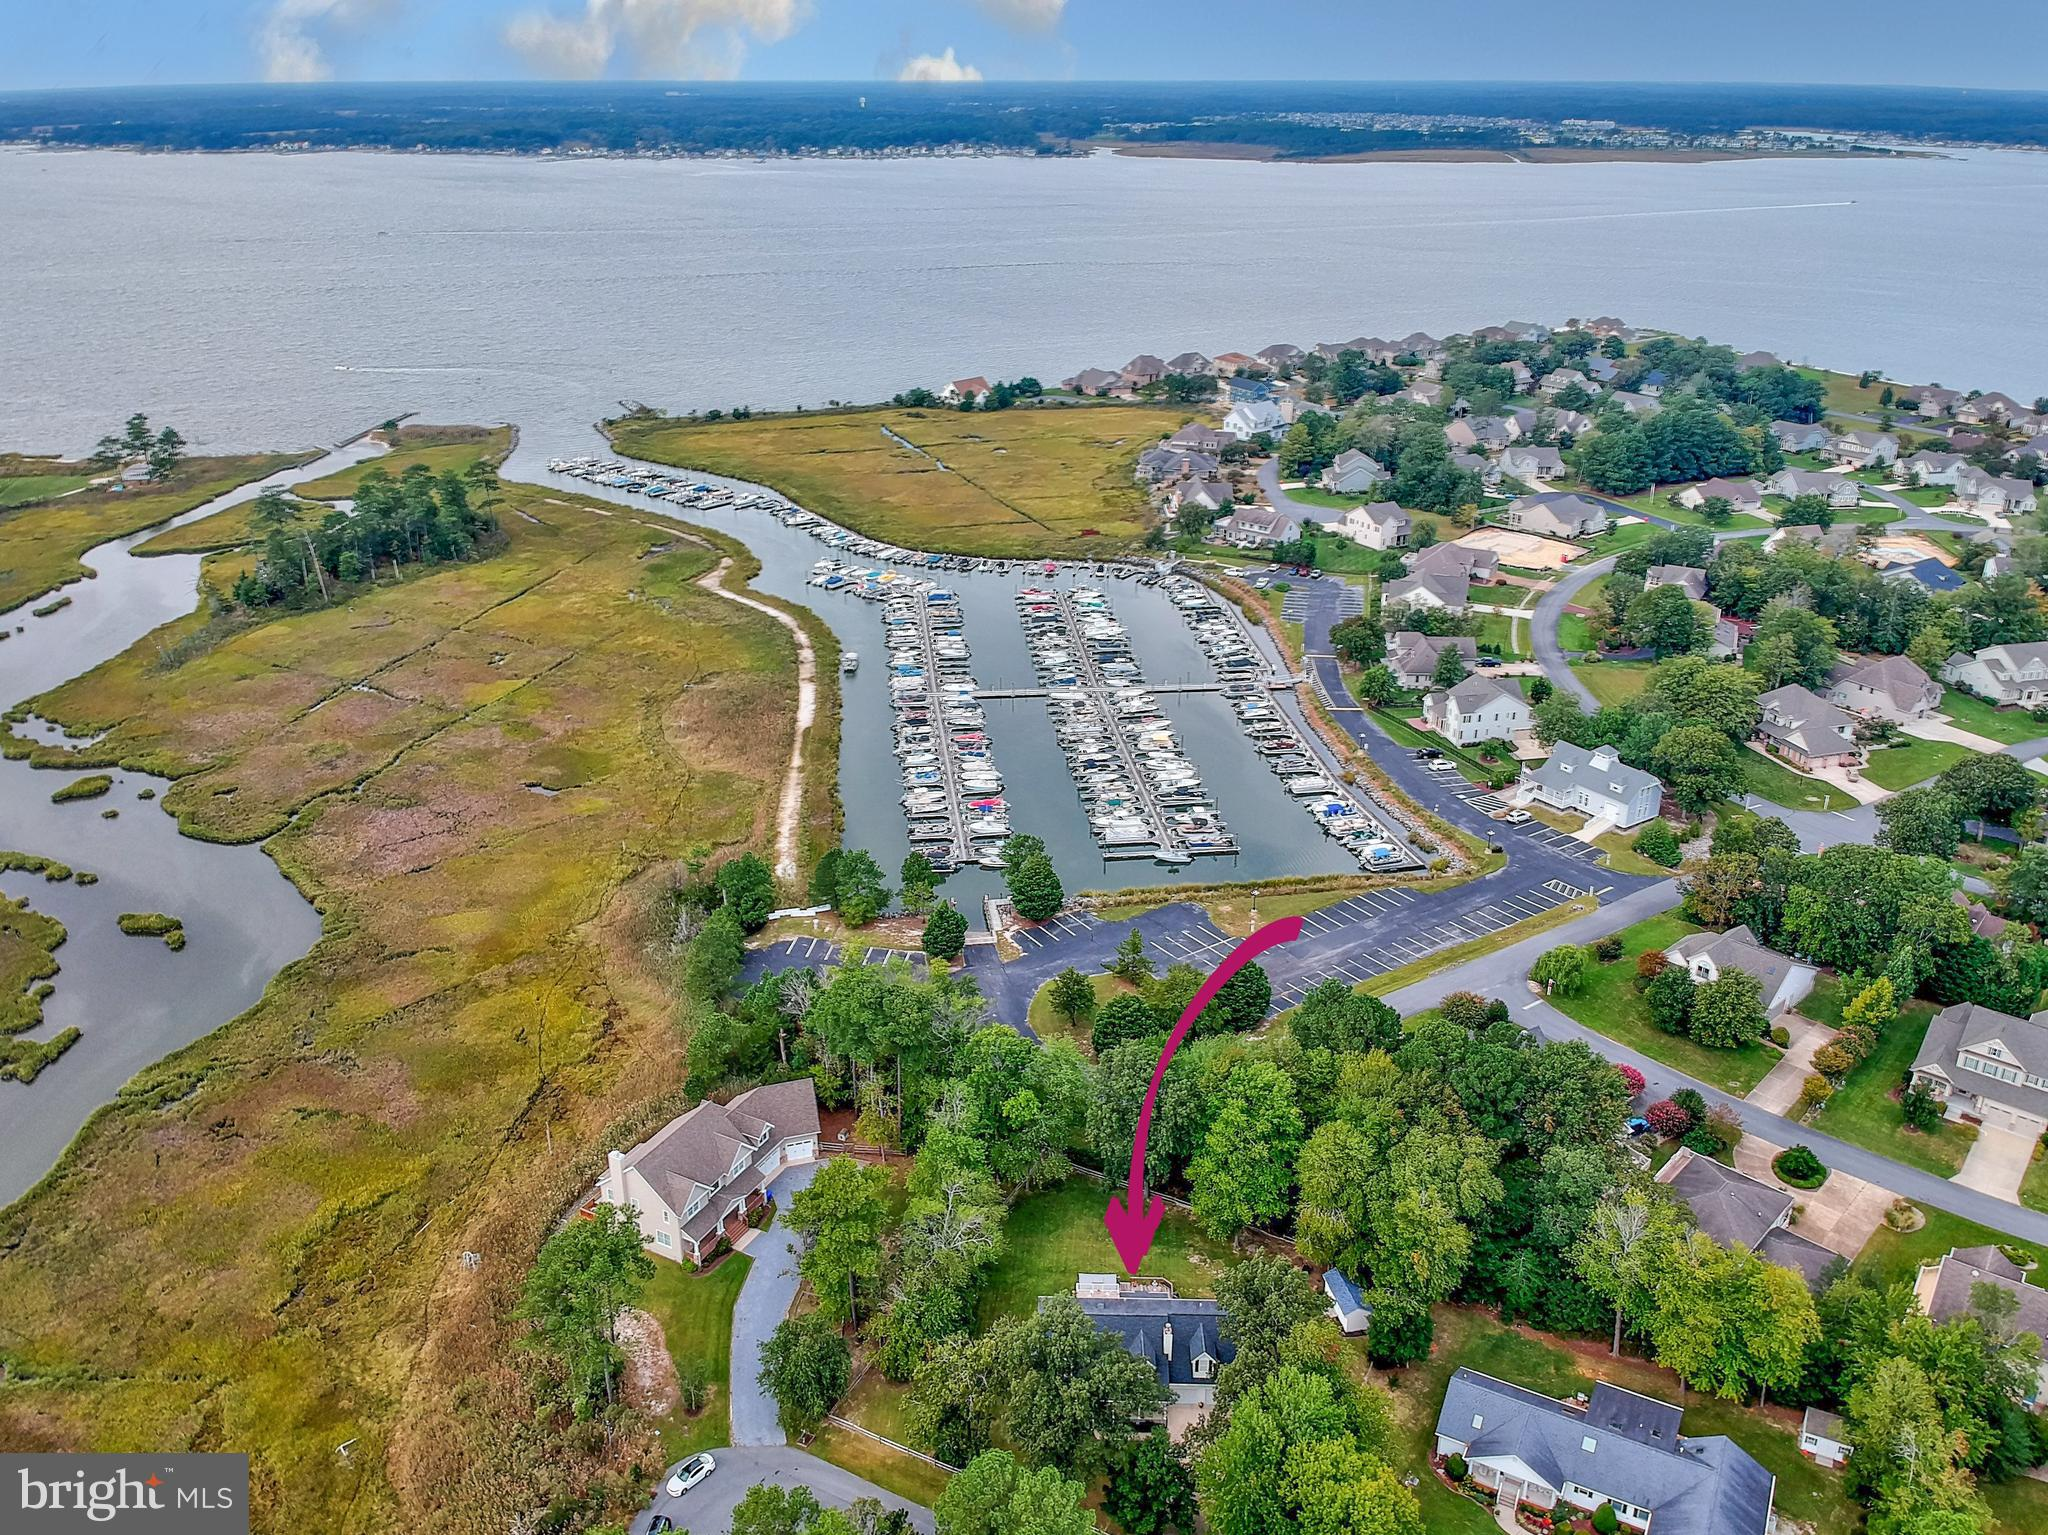 Surrounded by water, wetlands, and views of the marina and Indian River Bay all on 1/2 acre...Welcome to this spacious and attractive home offering 5 Bedrooms and 3.5 Baths, a 2-car garage plus large detached shed - in a small private community with easy access to Bethany Beach.  There is also a boat slip which may be purchased separately! You will love the peace and quiet that surround this location as you walk up to the large covered front porch.  Three large living spaces on the main level provide many options!  The front living area offers a wood burning fireplace and a view of the kitchen.  Ceramic tiled floors lead to the kitchen which  is perfectly located in the center of the home and has ample room for dining or lounging - either at the breakfast bar or the adjacent sitting area.  The kitchen offers a great work triangle with plenty of counter space, wood cabinets, and a view into the rear living space.  Tucked away off the kitchen is a mudroom with full size washer and dryer, cabinetry and powder room, as well as easy access to the oversized garage (23.5x24) with extra refrigerator and storage cabinets.  The rear great room is filled with natural light and features built-in shelving, wall-mounted TV and wired surround sound.  Access the large (14x33!) rear deck to fully enjoy the generous lot size and marina views.  A screened gazebo is the perfect retreat and the large backyard is ready for fun activities.  A first floor Master Bedroom with beautifully updated en suite bath is situated along the left side of the home.  Head upstairs to a central loft space that overlooks the foyer in one direction and looks out over the marina and Indian River Bay in other.  The upper level deck off the loft is inviting and private, sure to be your new favorite place!  Back inside, the 2nd level also offers 3 guest bedrooms, a full bath, and a 2nd ensuite Bedroom with more of those lovely marina and water views!  Mallard Creek is a small, beautiful neighborhood near the e